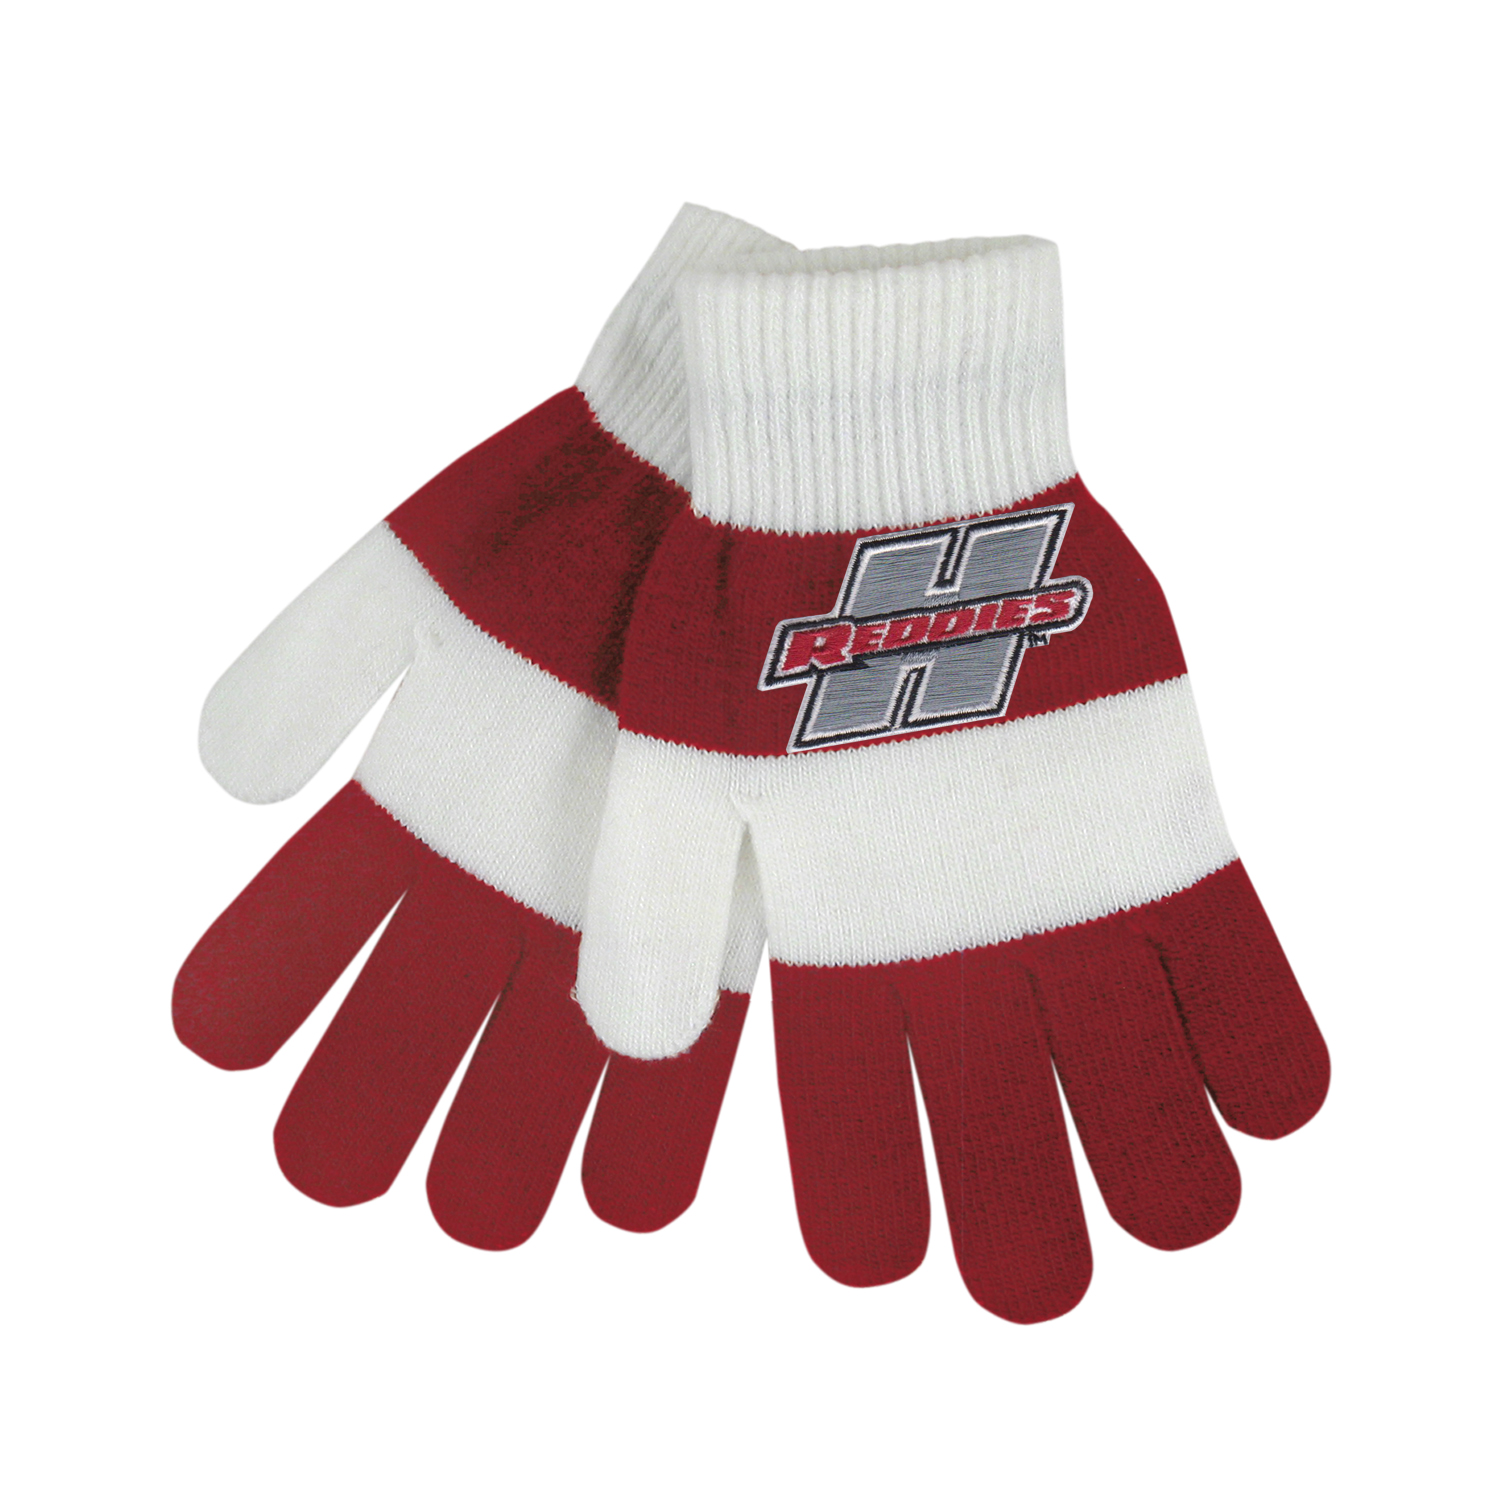 Henderson Reddies Trixie Gloves